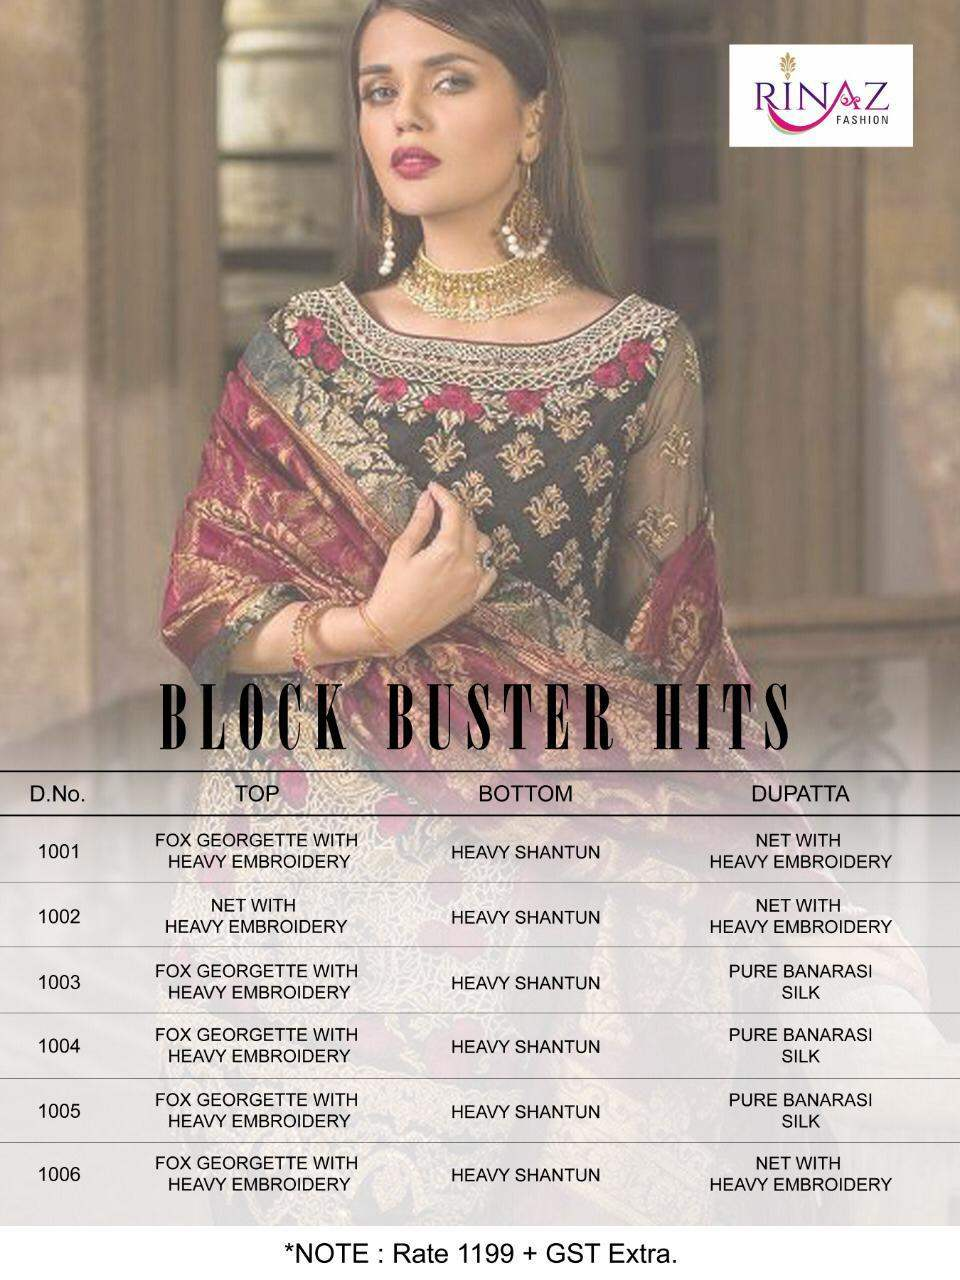 Block Buster Hits By Rinaz Fashion collection 5